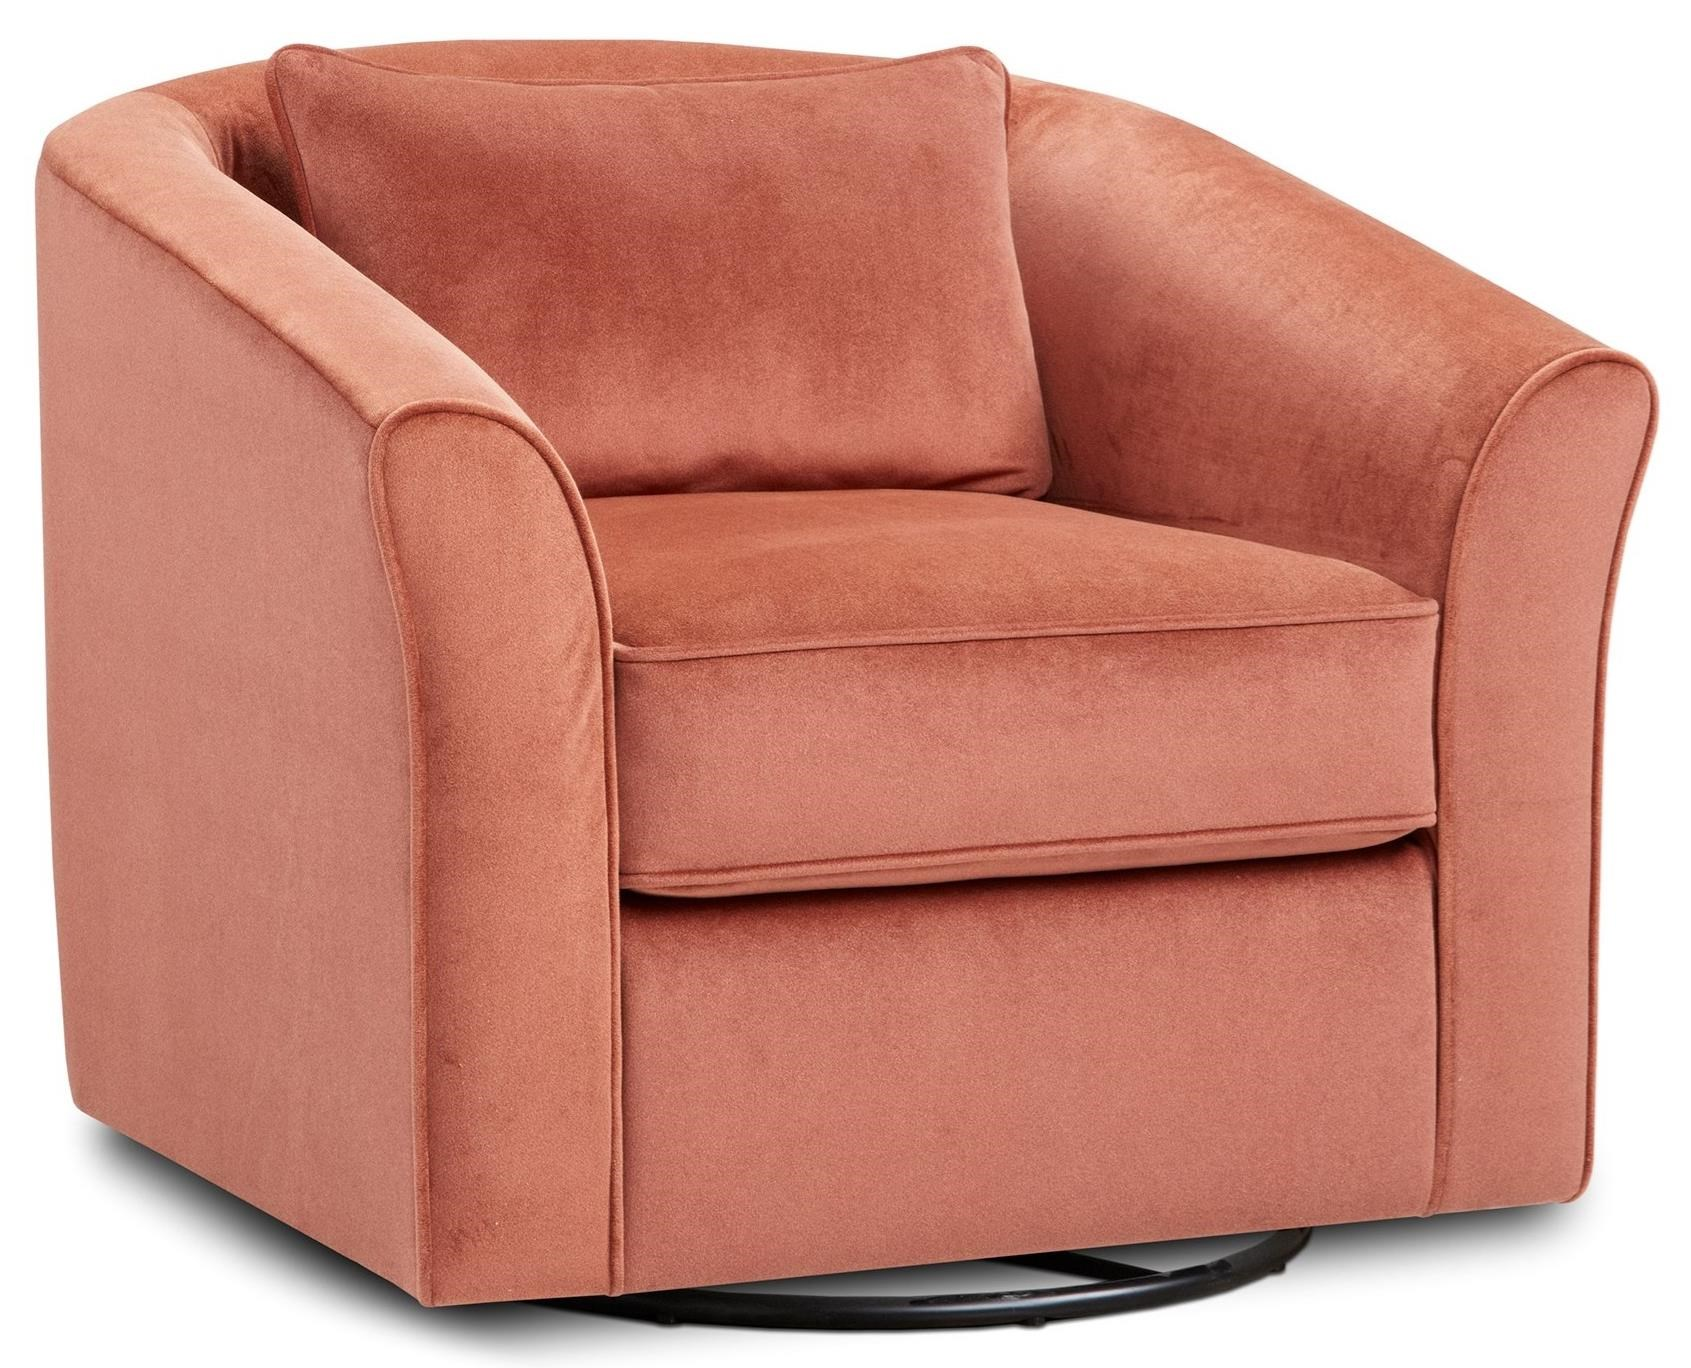 53-02 Swivel Chair by FN at Lindy's Furniture Company